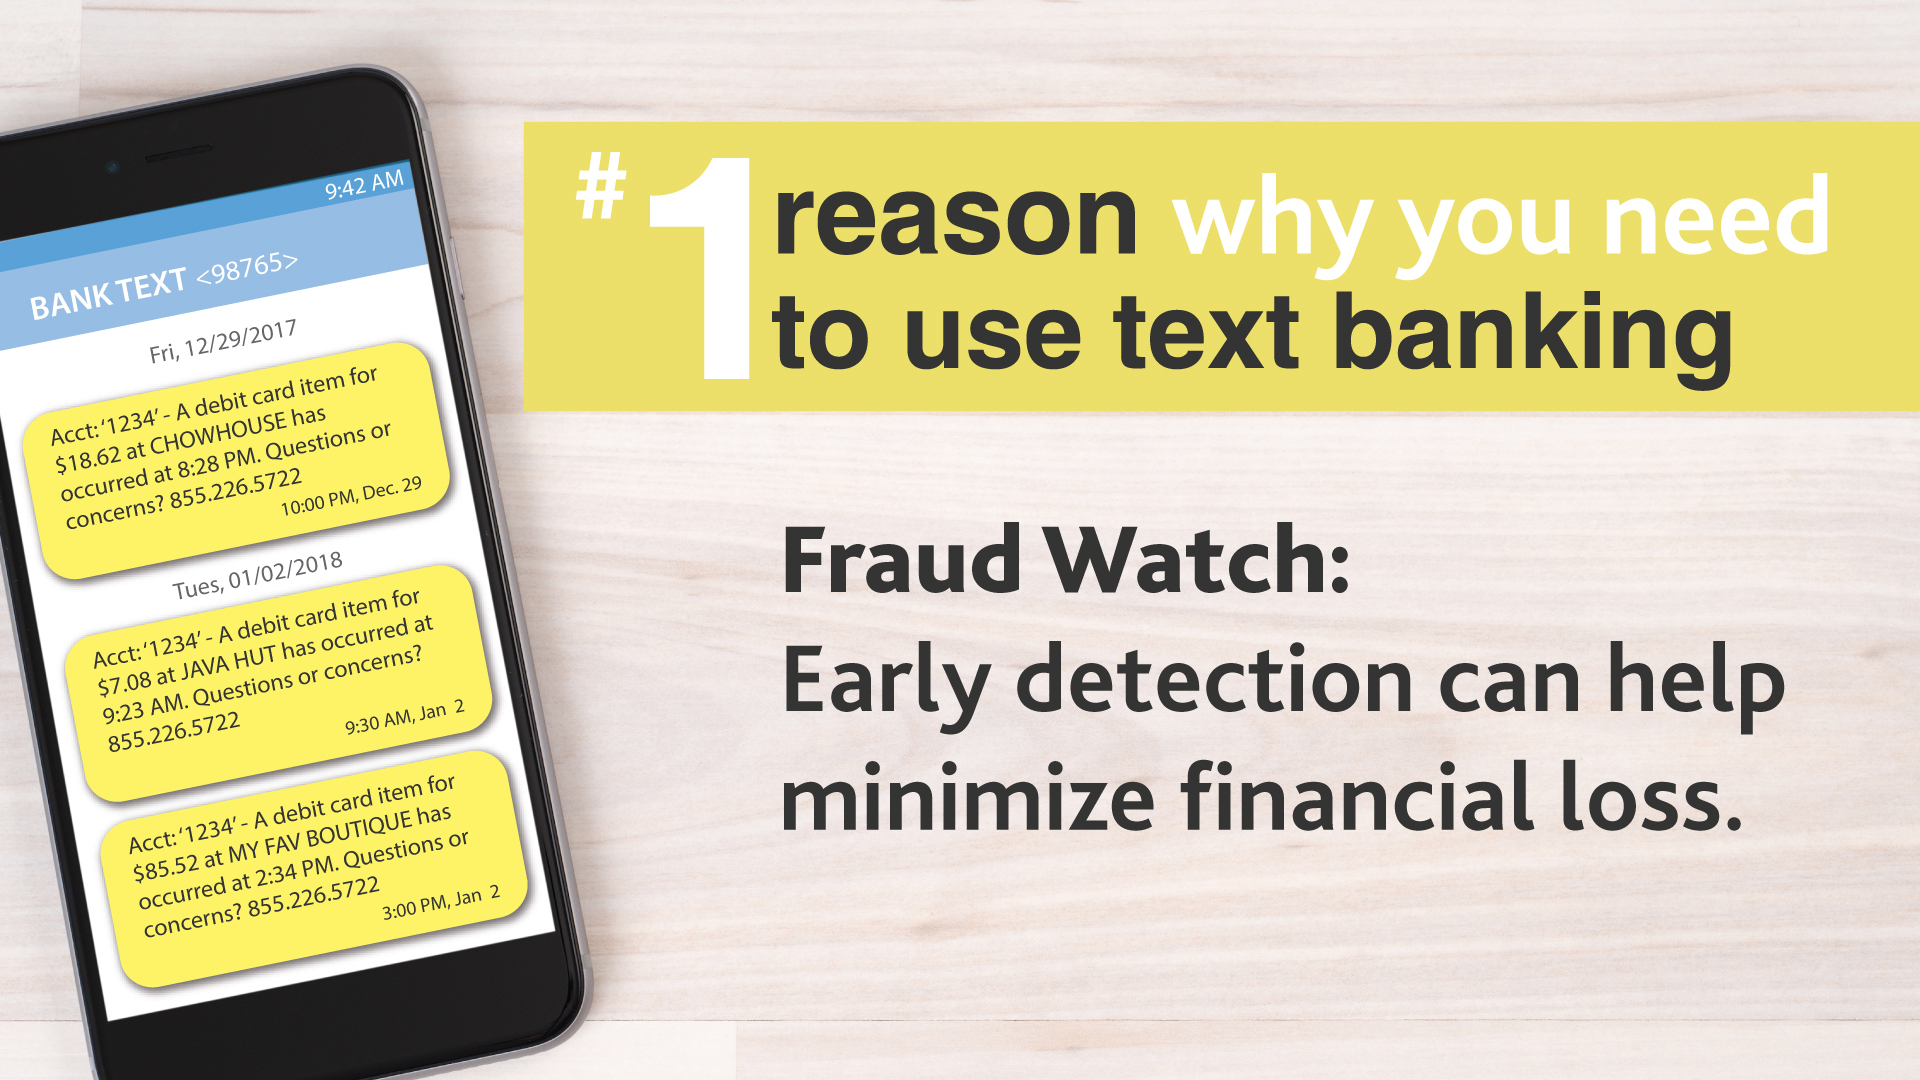 Id Theft Fraud Rcb Bank Wiring Money Precautions Phone And Text Banking Graphic